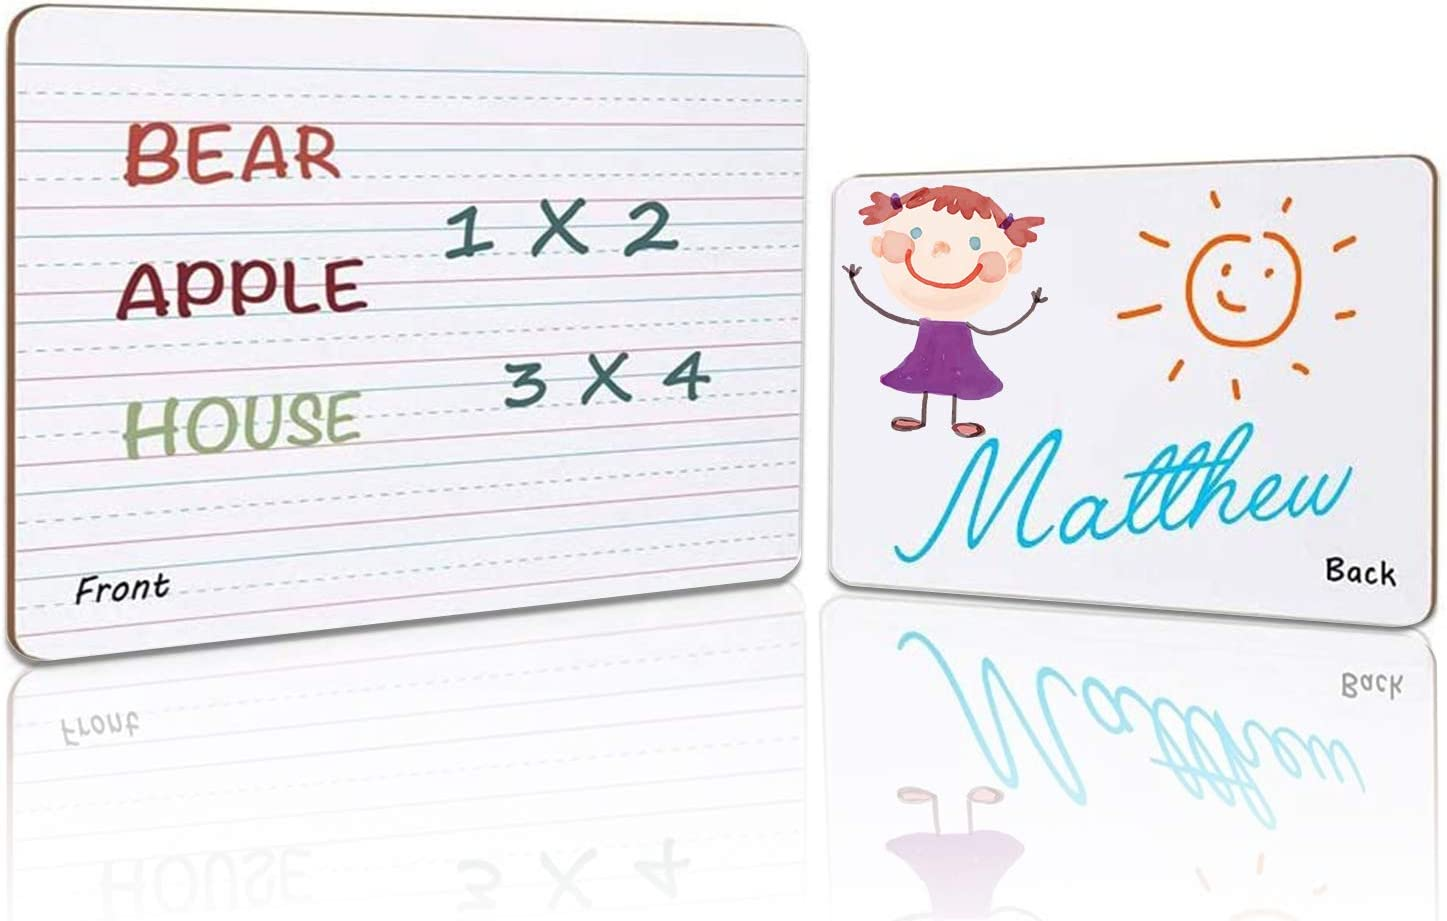 Dry Erase Learning Board Double Sided Ruled Blank Homeschooling WFH Sealed